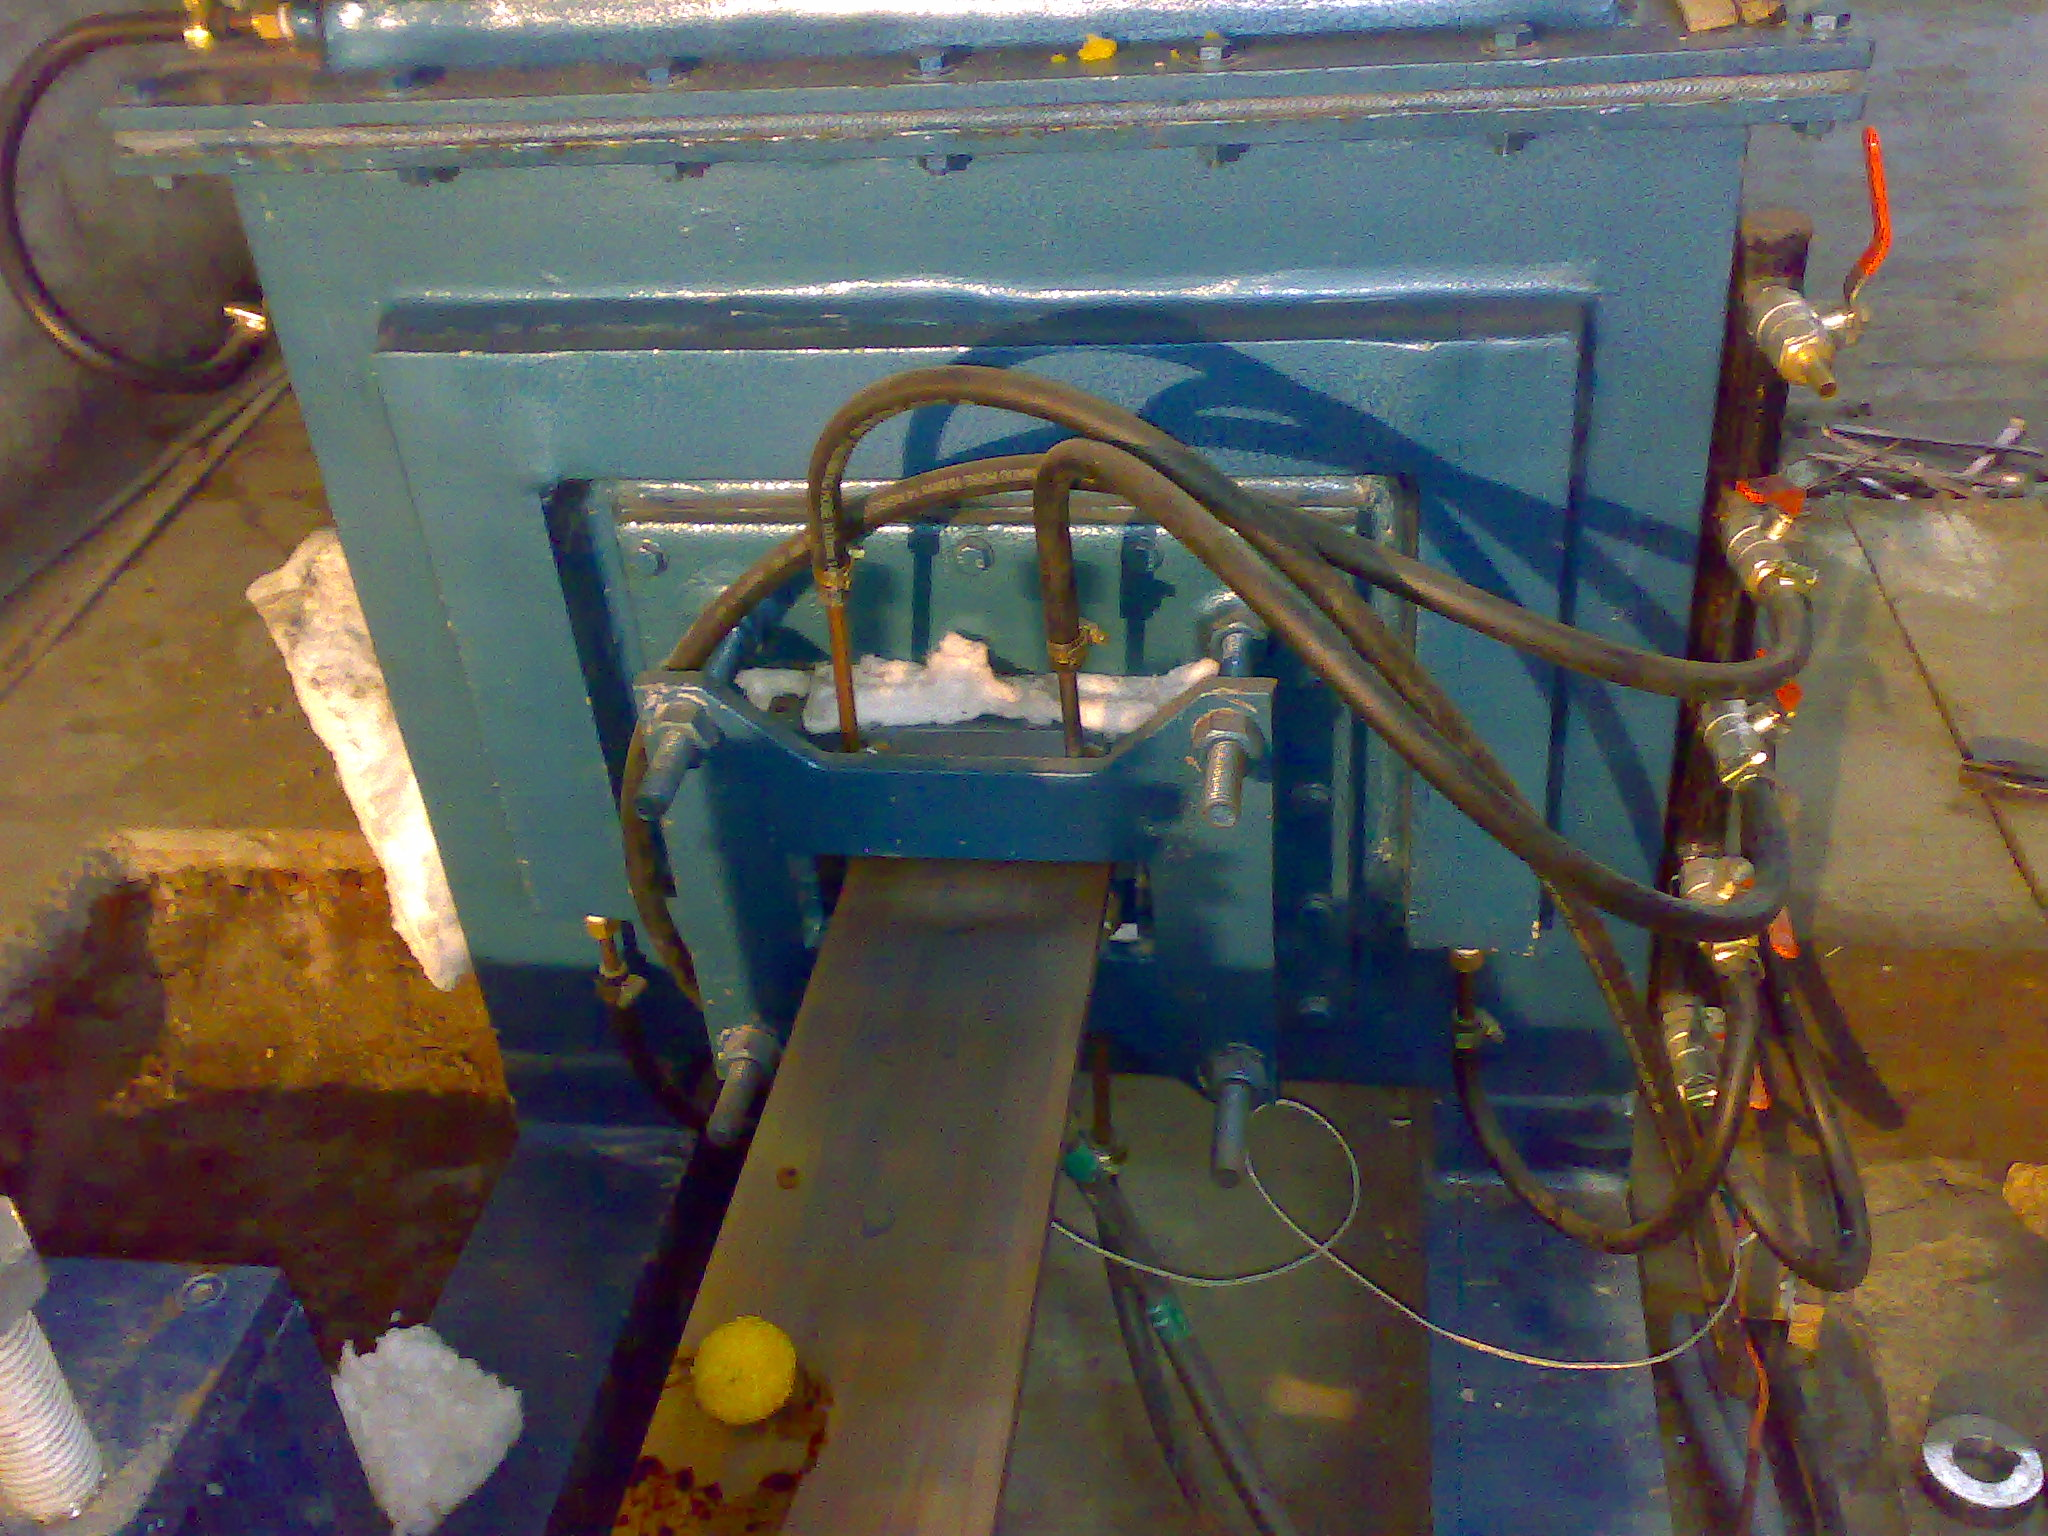 Horizontal Strip Casting Machine